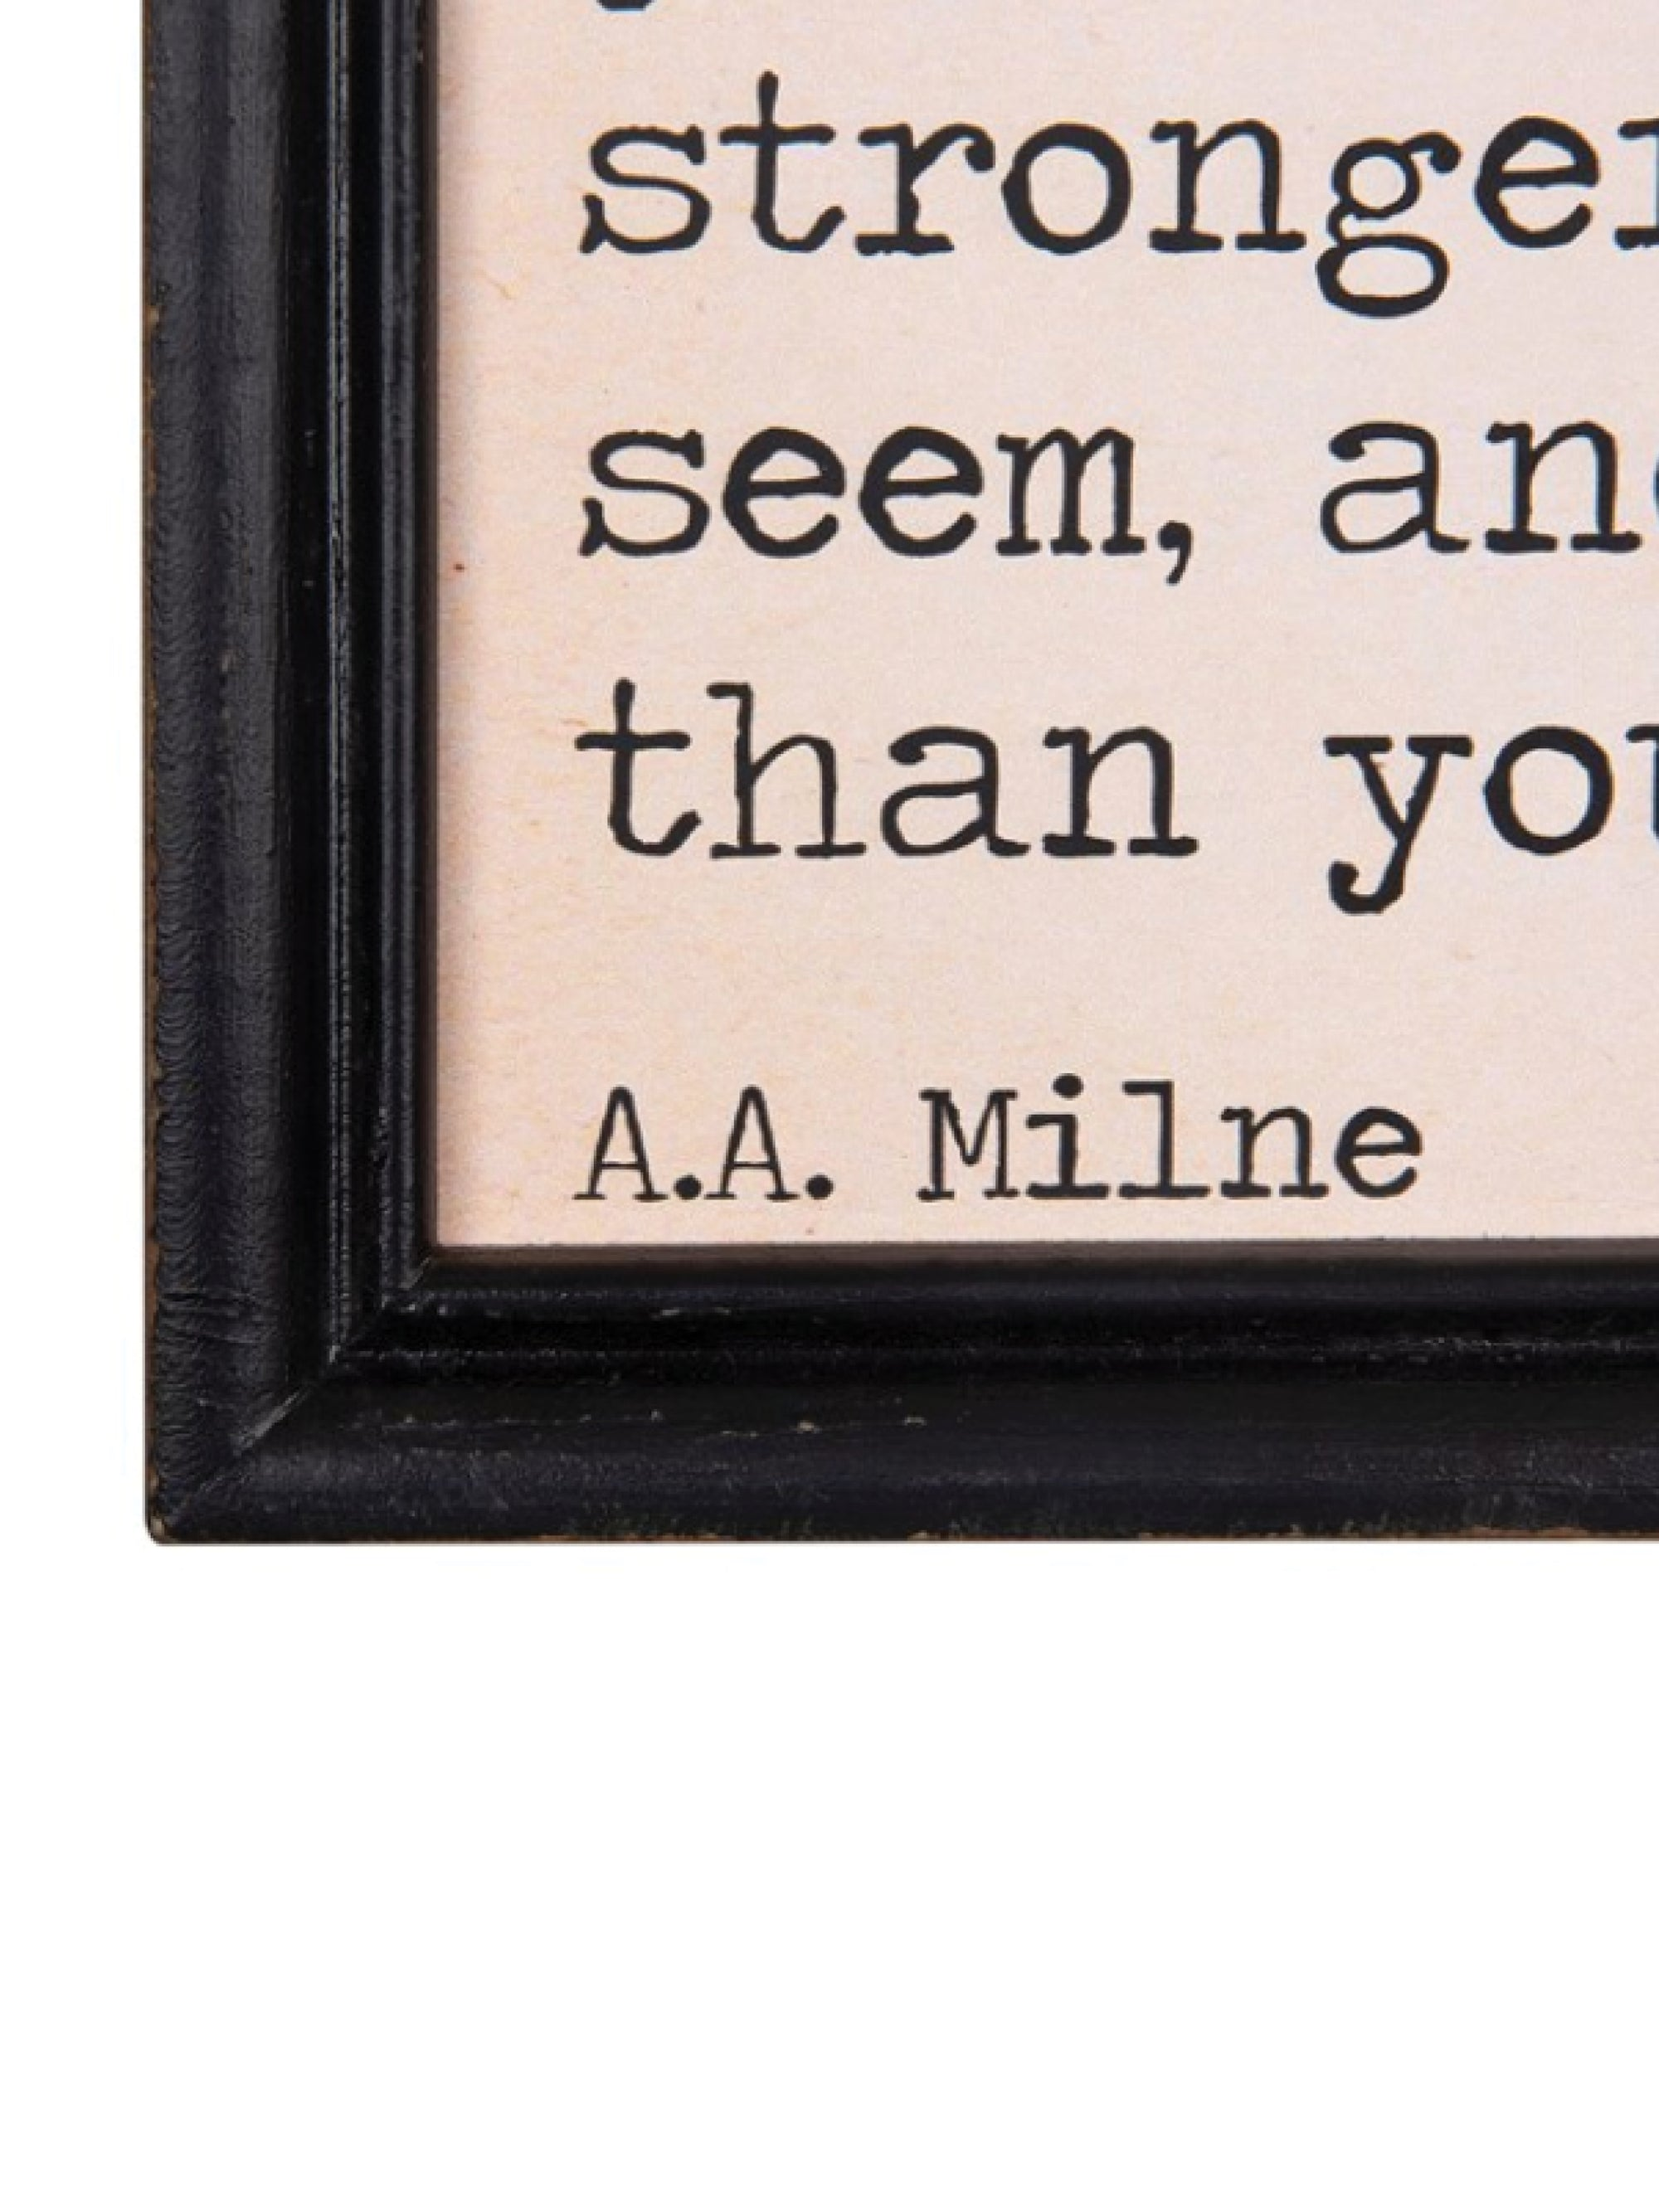 Mini Framed Sign with Saying